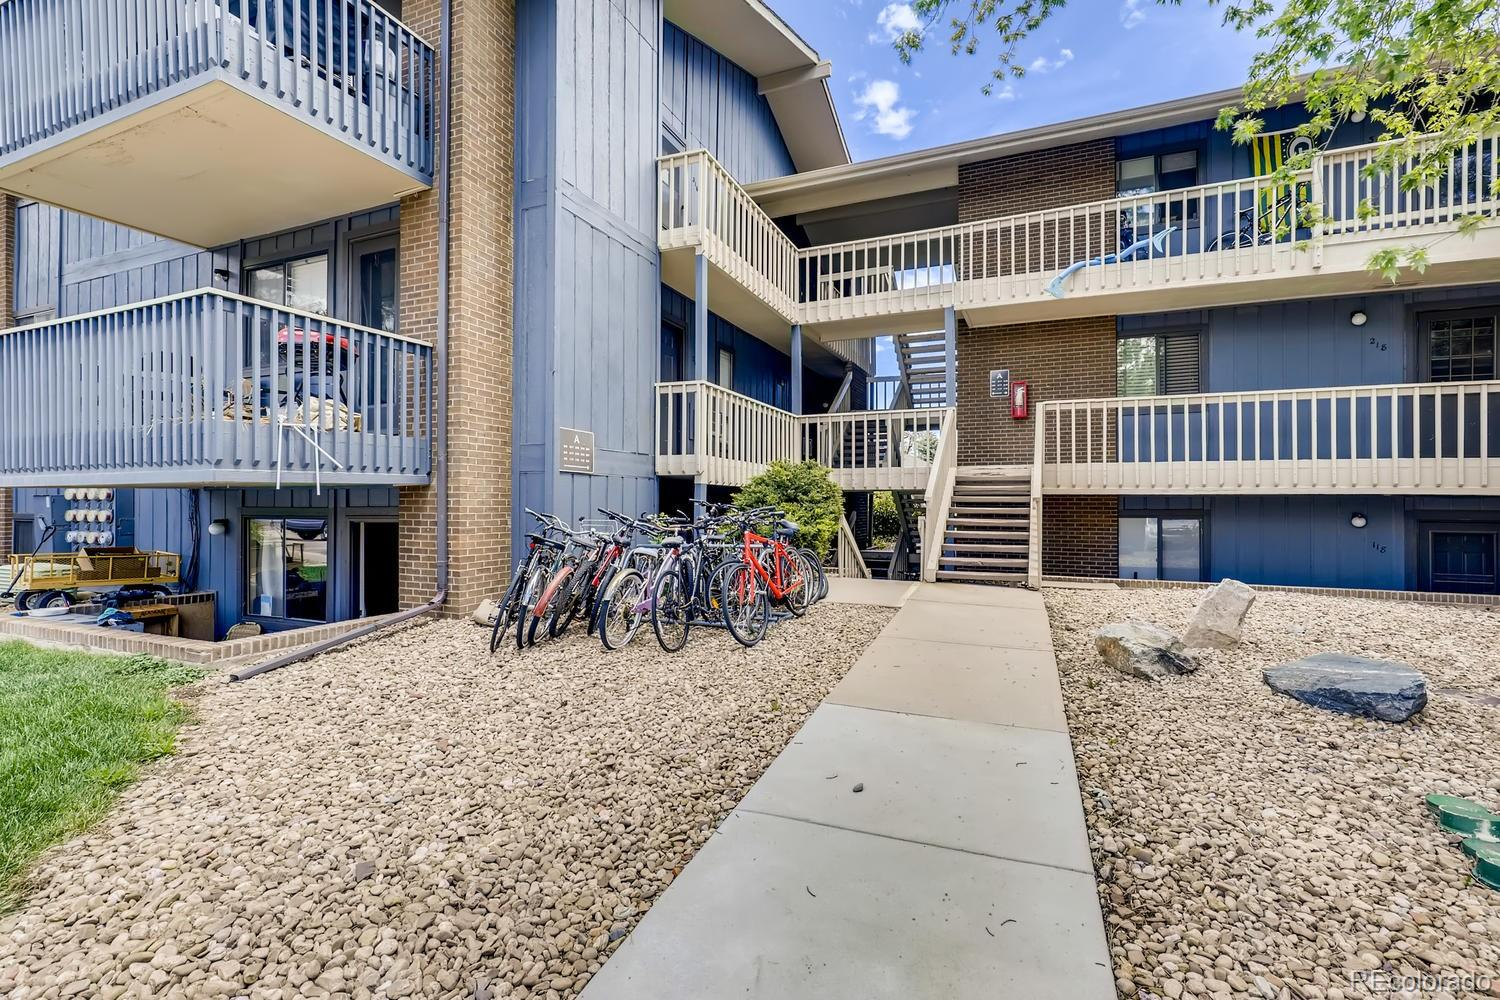 Cute condo in Boulder features 2 beds, 2 baths, living room, kitchen, in-unit laundry and carport parking space. Unit overlooks a biking/jogging path.  Great for yourself or as an investment property. Neutral tones throughout.  Ceiling fans and wall unit air conditioning keep the unit comfortable on those warm summer days.  The living room features a wood burning fireplace.  Wood laminate flooring in main living areas, carpeting in the bedrooms.  HOA covers heat & hot water, natural gas  (central boiler technology), pool, central showers, clubhouse & grounds. Bike path makes it easy to get around.  Great location - close to dining, shopping, entertainment and other amenities.